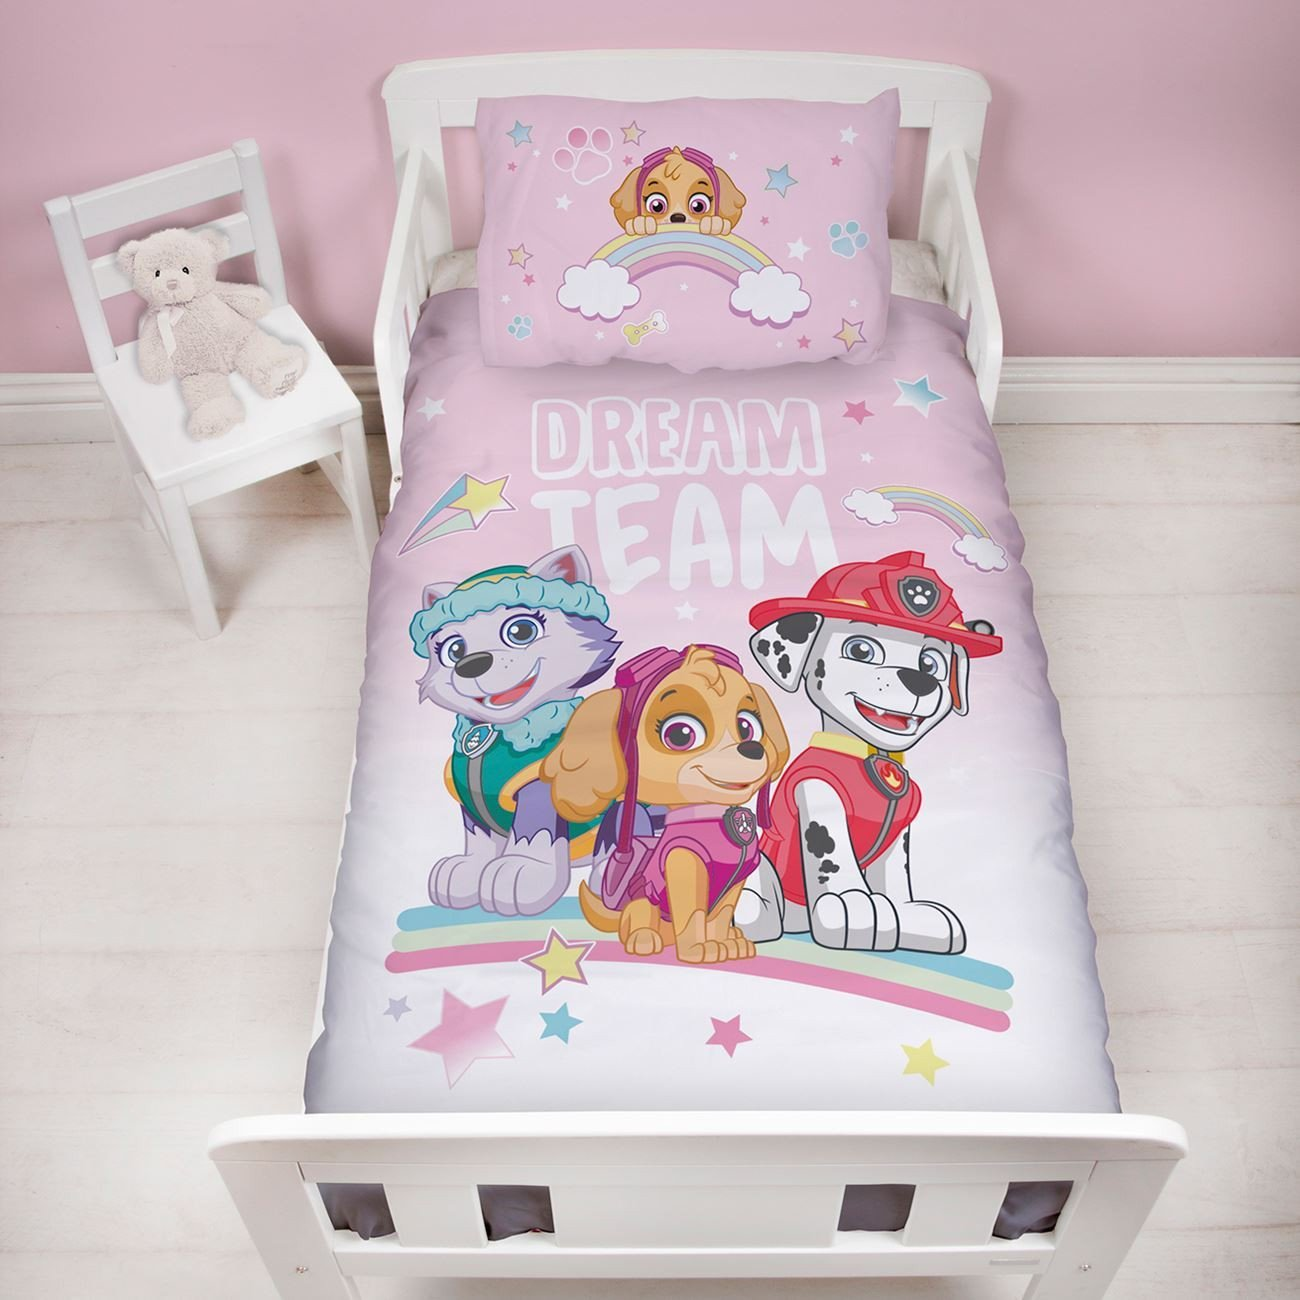 My Little Pony Bedroom Decor Unique Details About Paw Patrol Junior toddler Duvet Cover Set Pastels